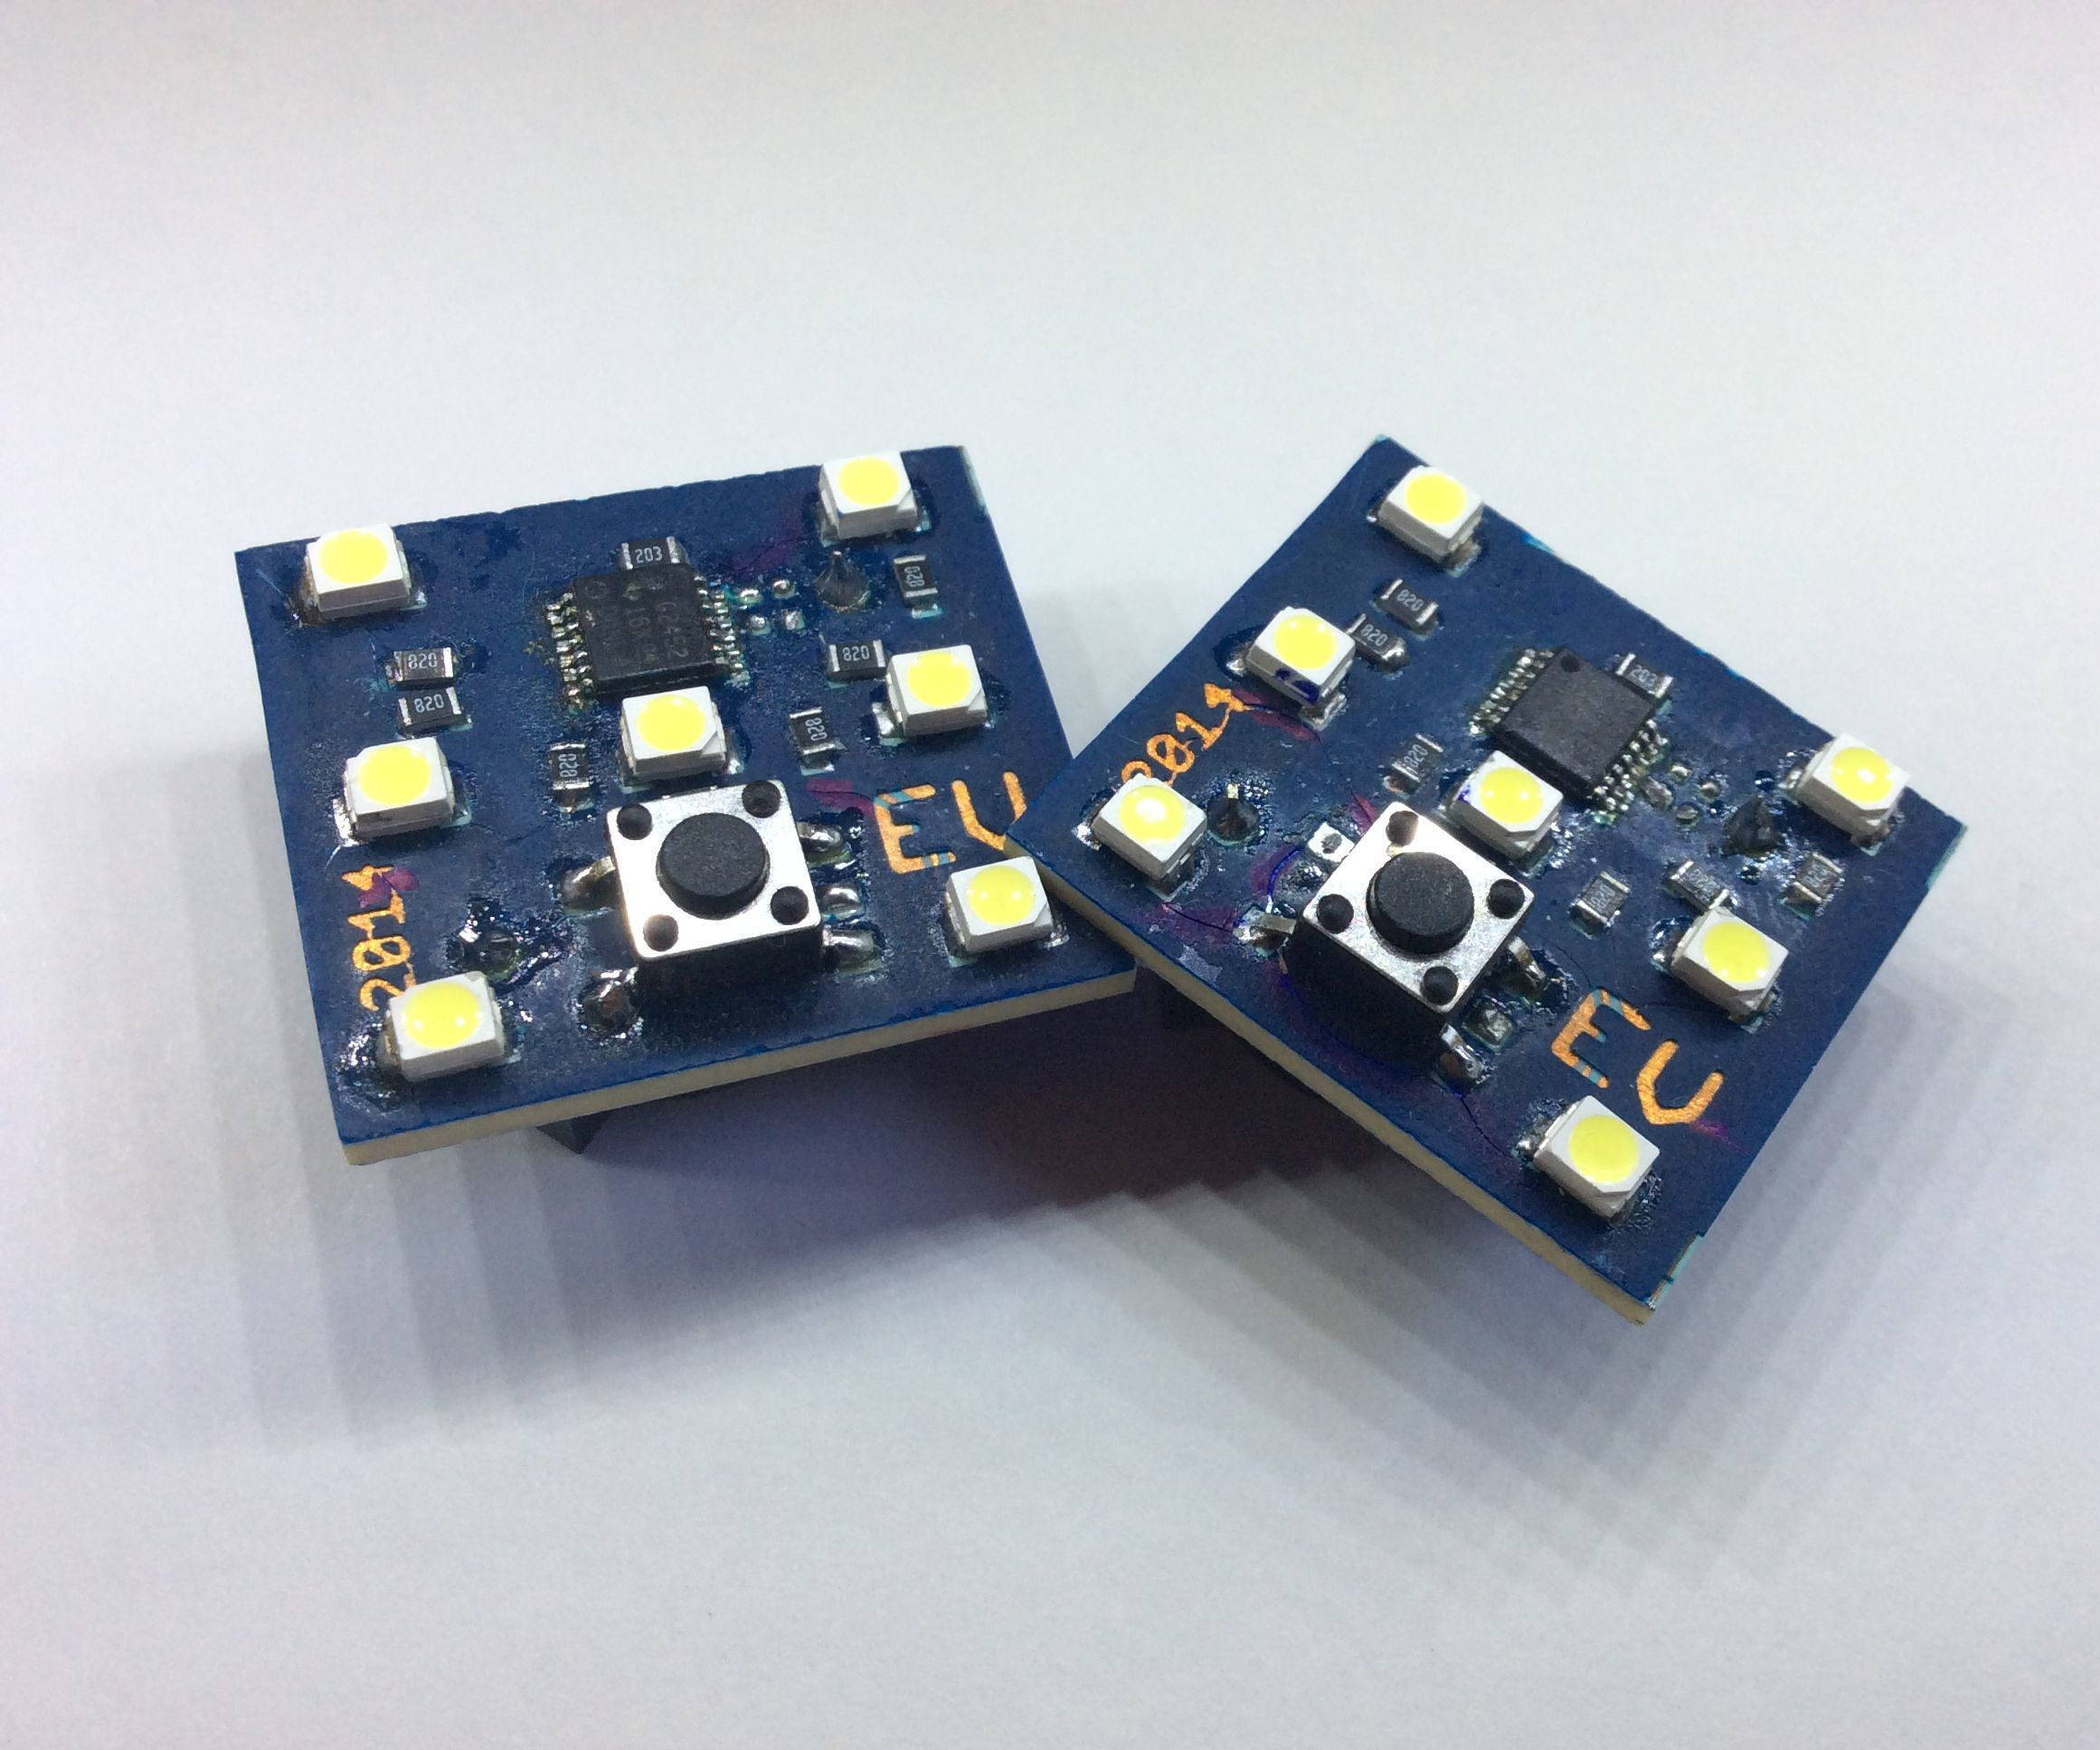 TinyDice: Professional PCBs at home